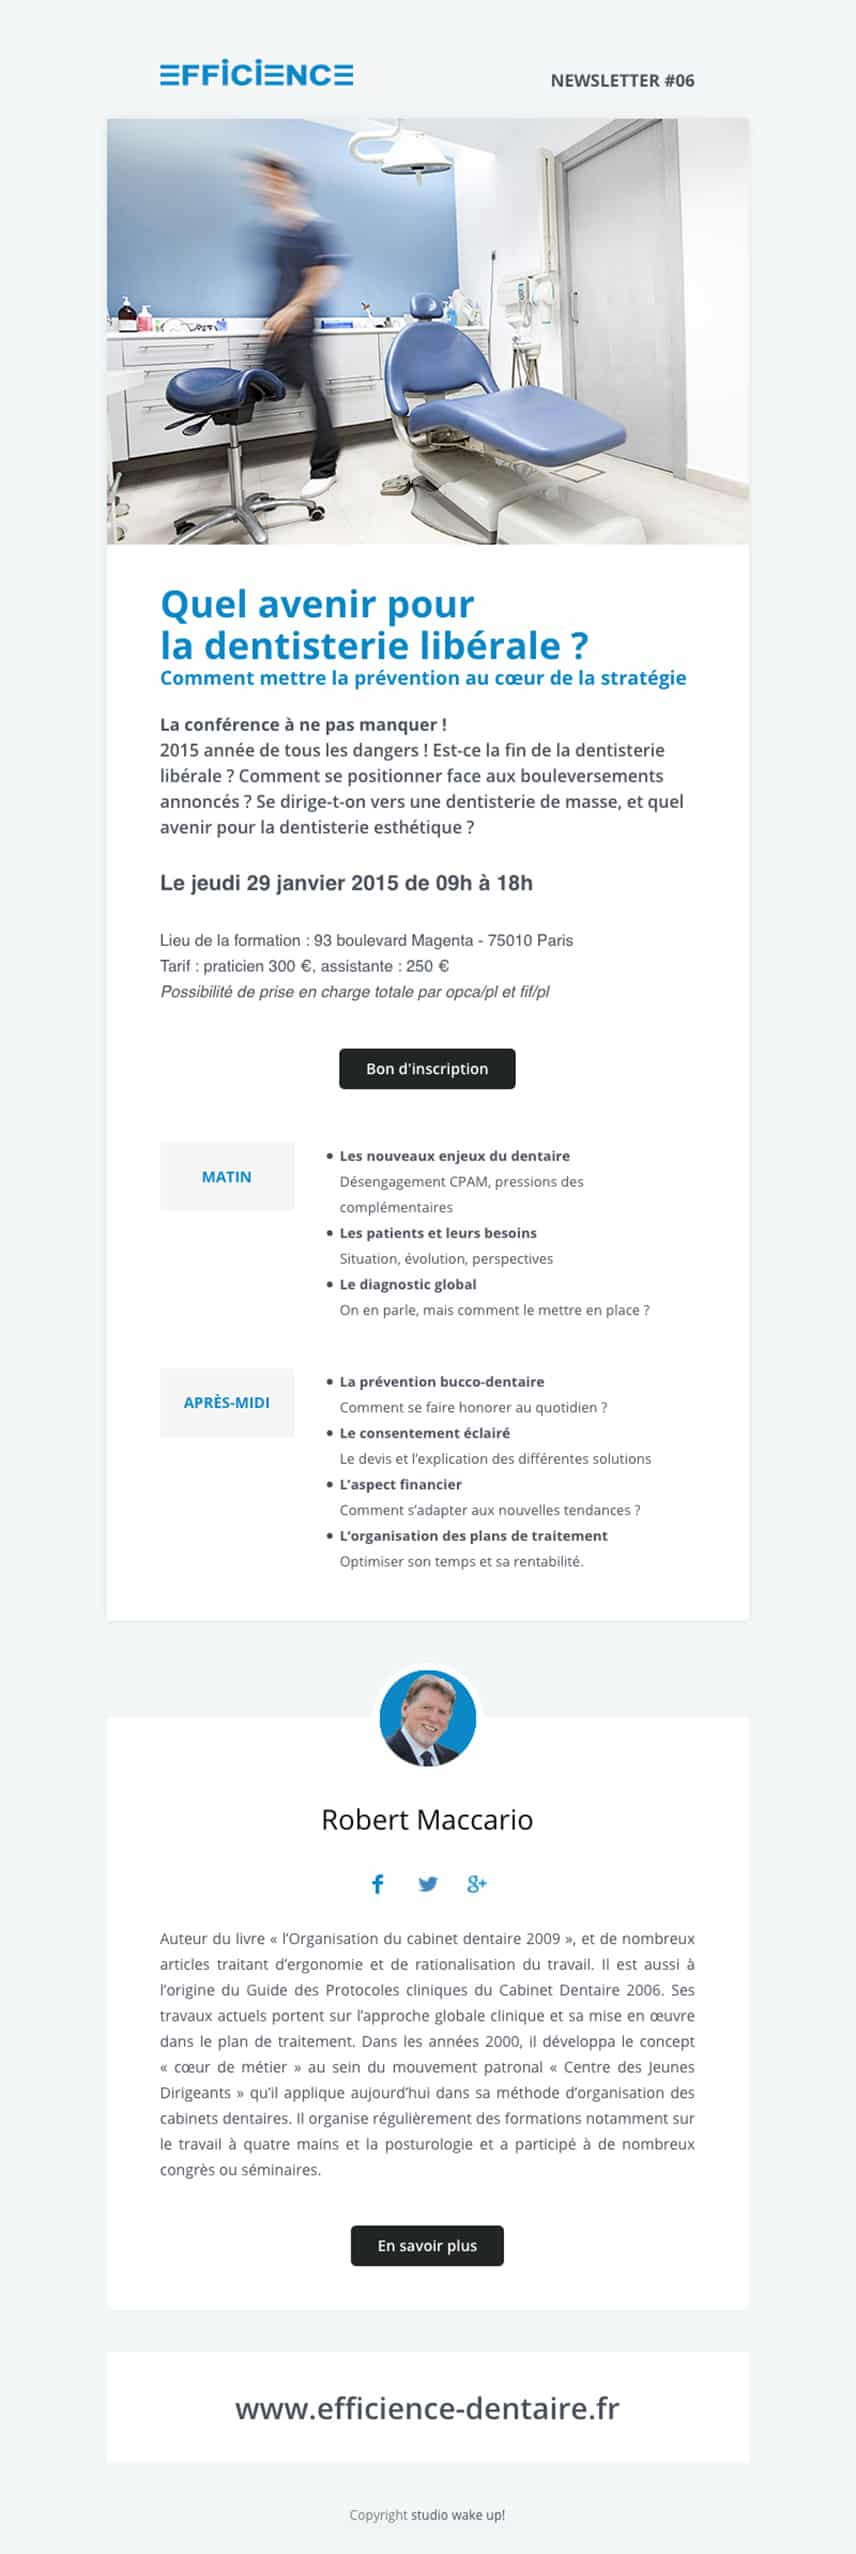 Création de la newsletter Efficience #06